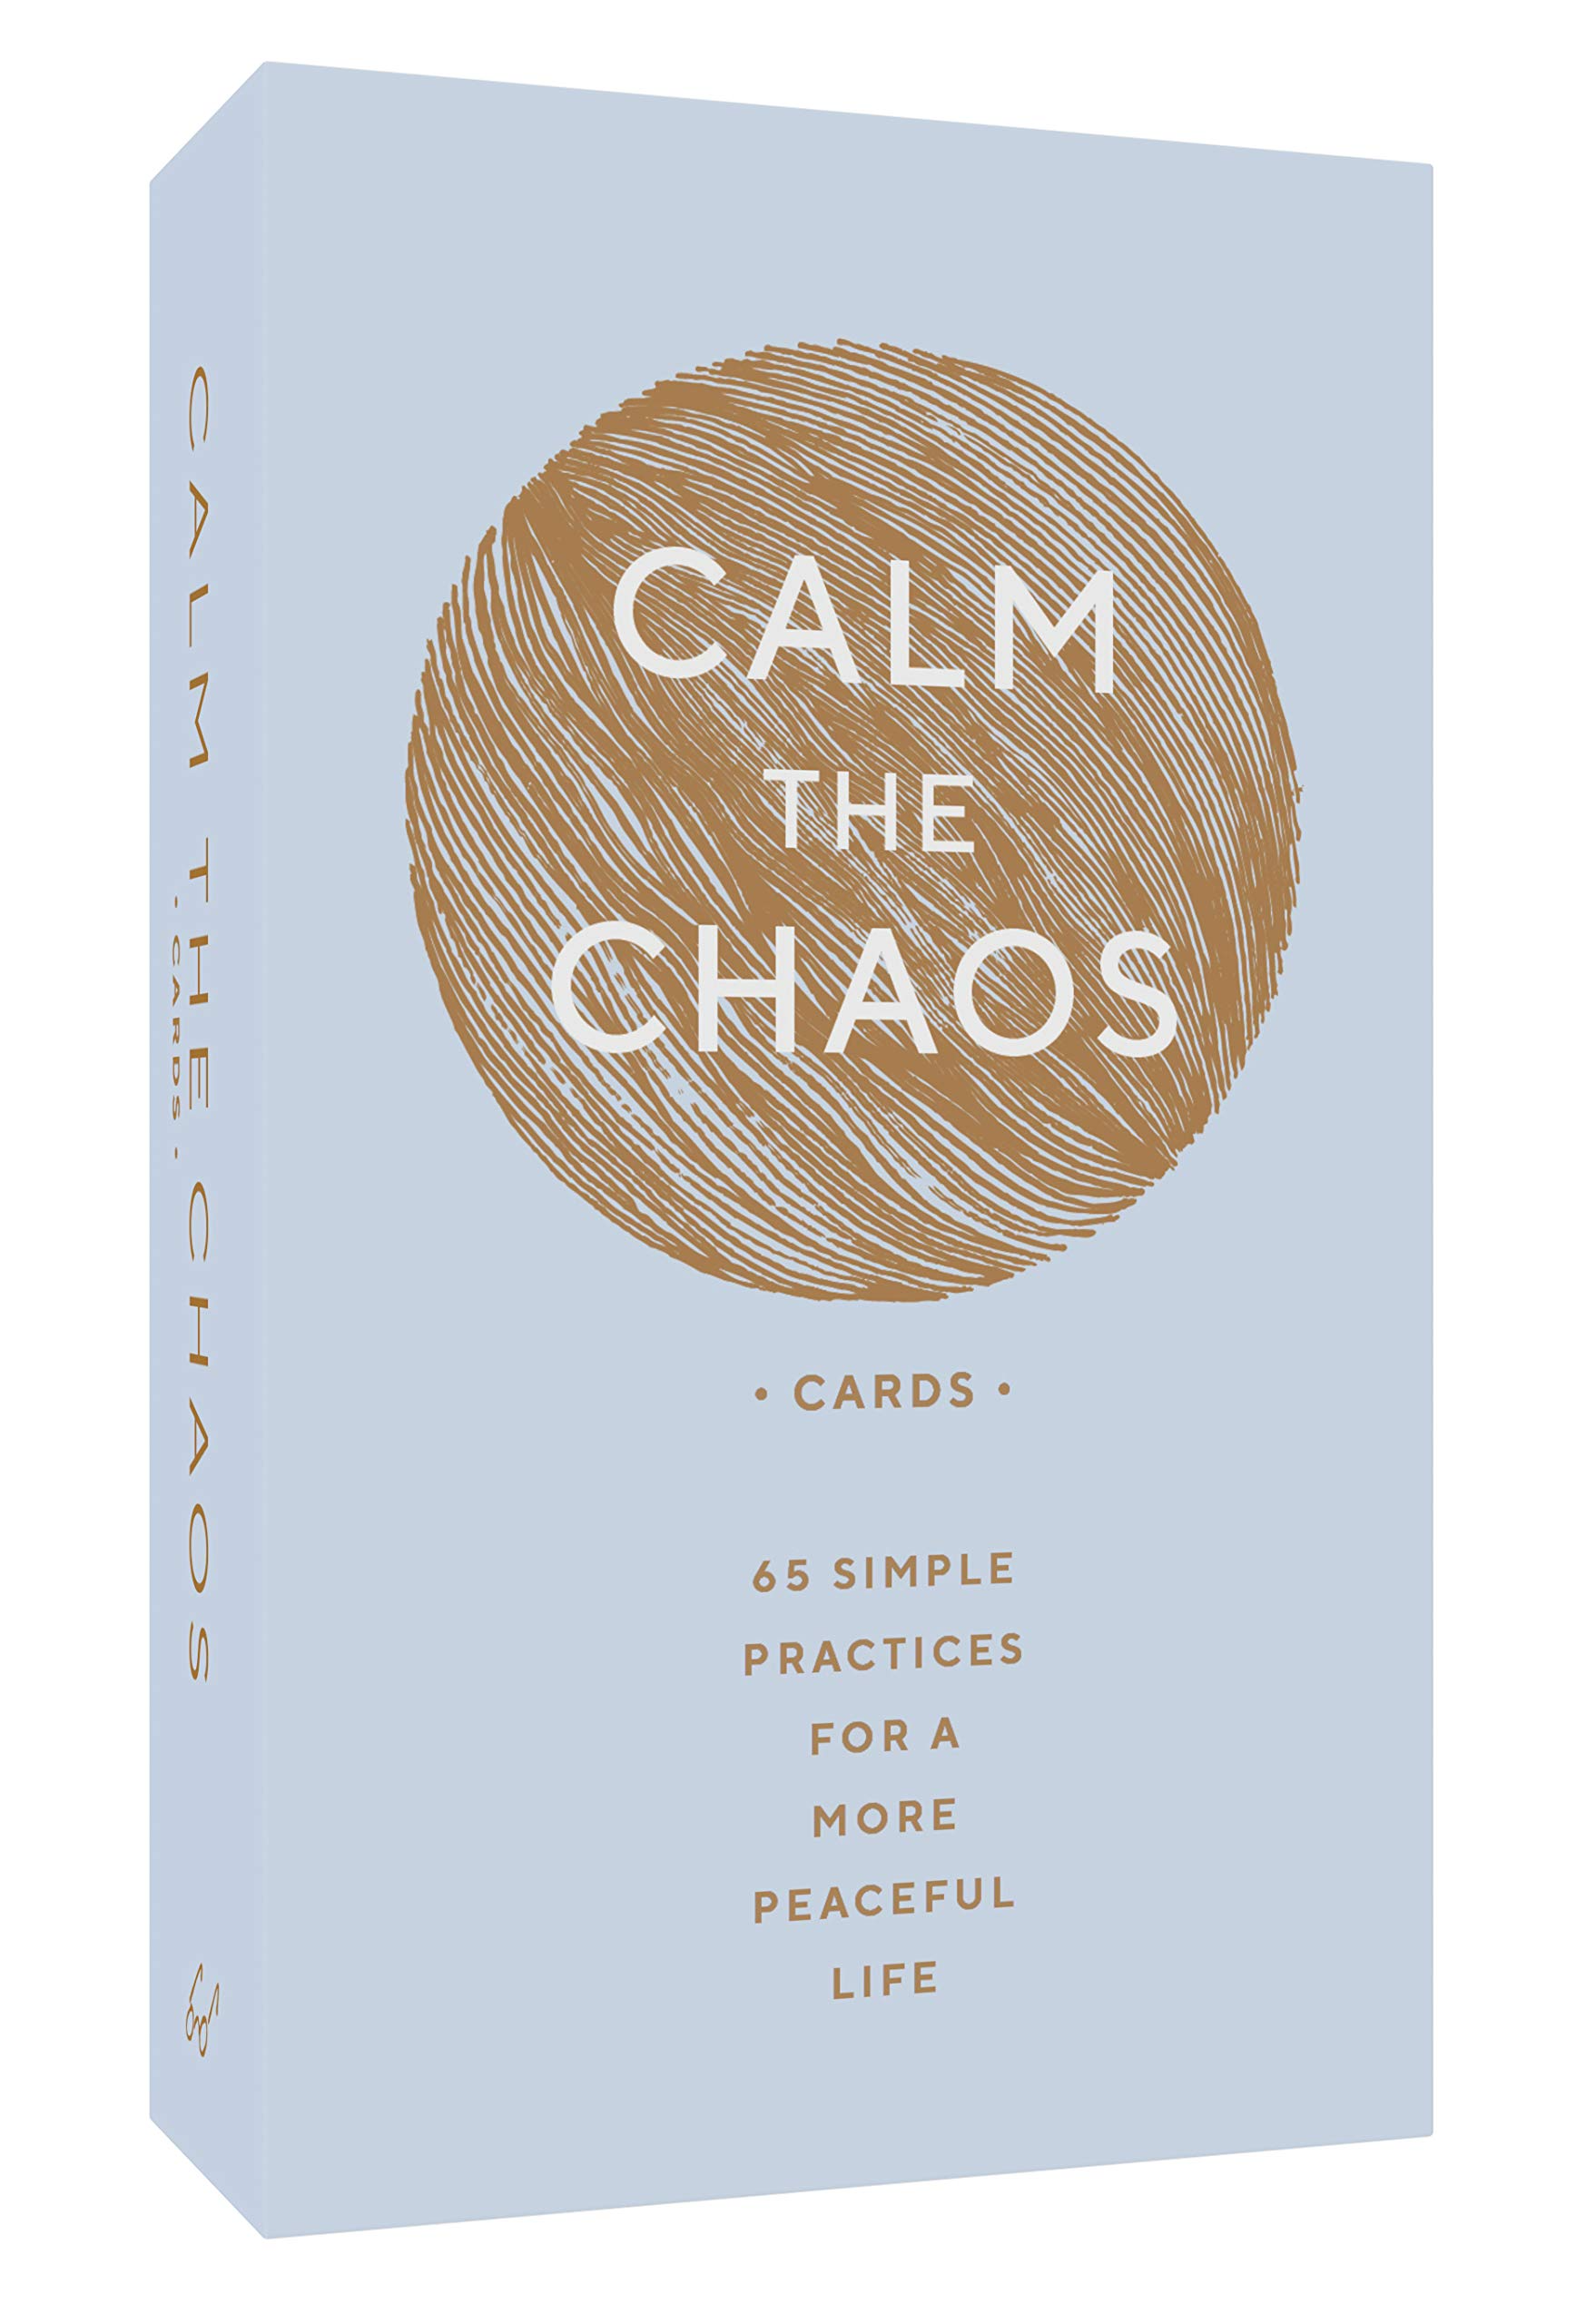 Calm The Chaos Cards - 65 Simple Practices for a More Peaceful Life